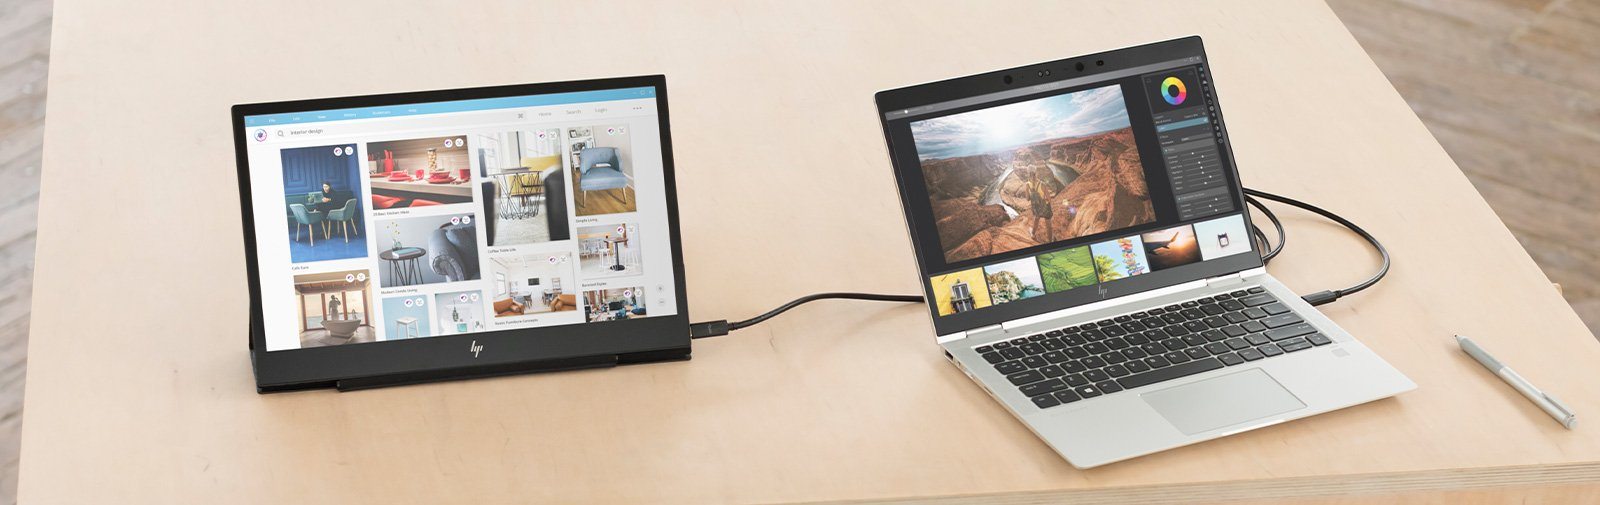 How to Set Up a Portable External Monitor for Your Laptop